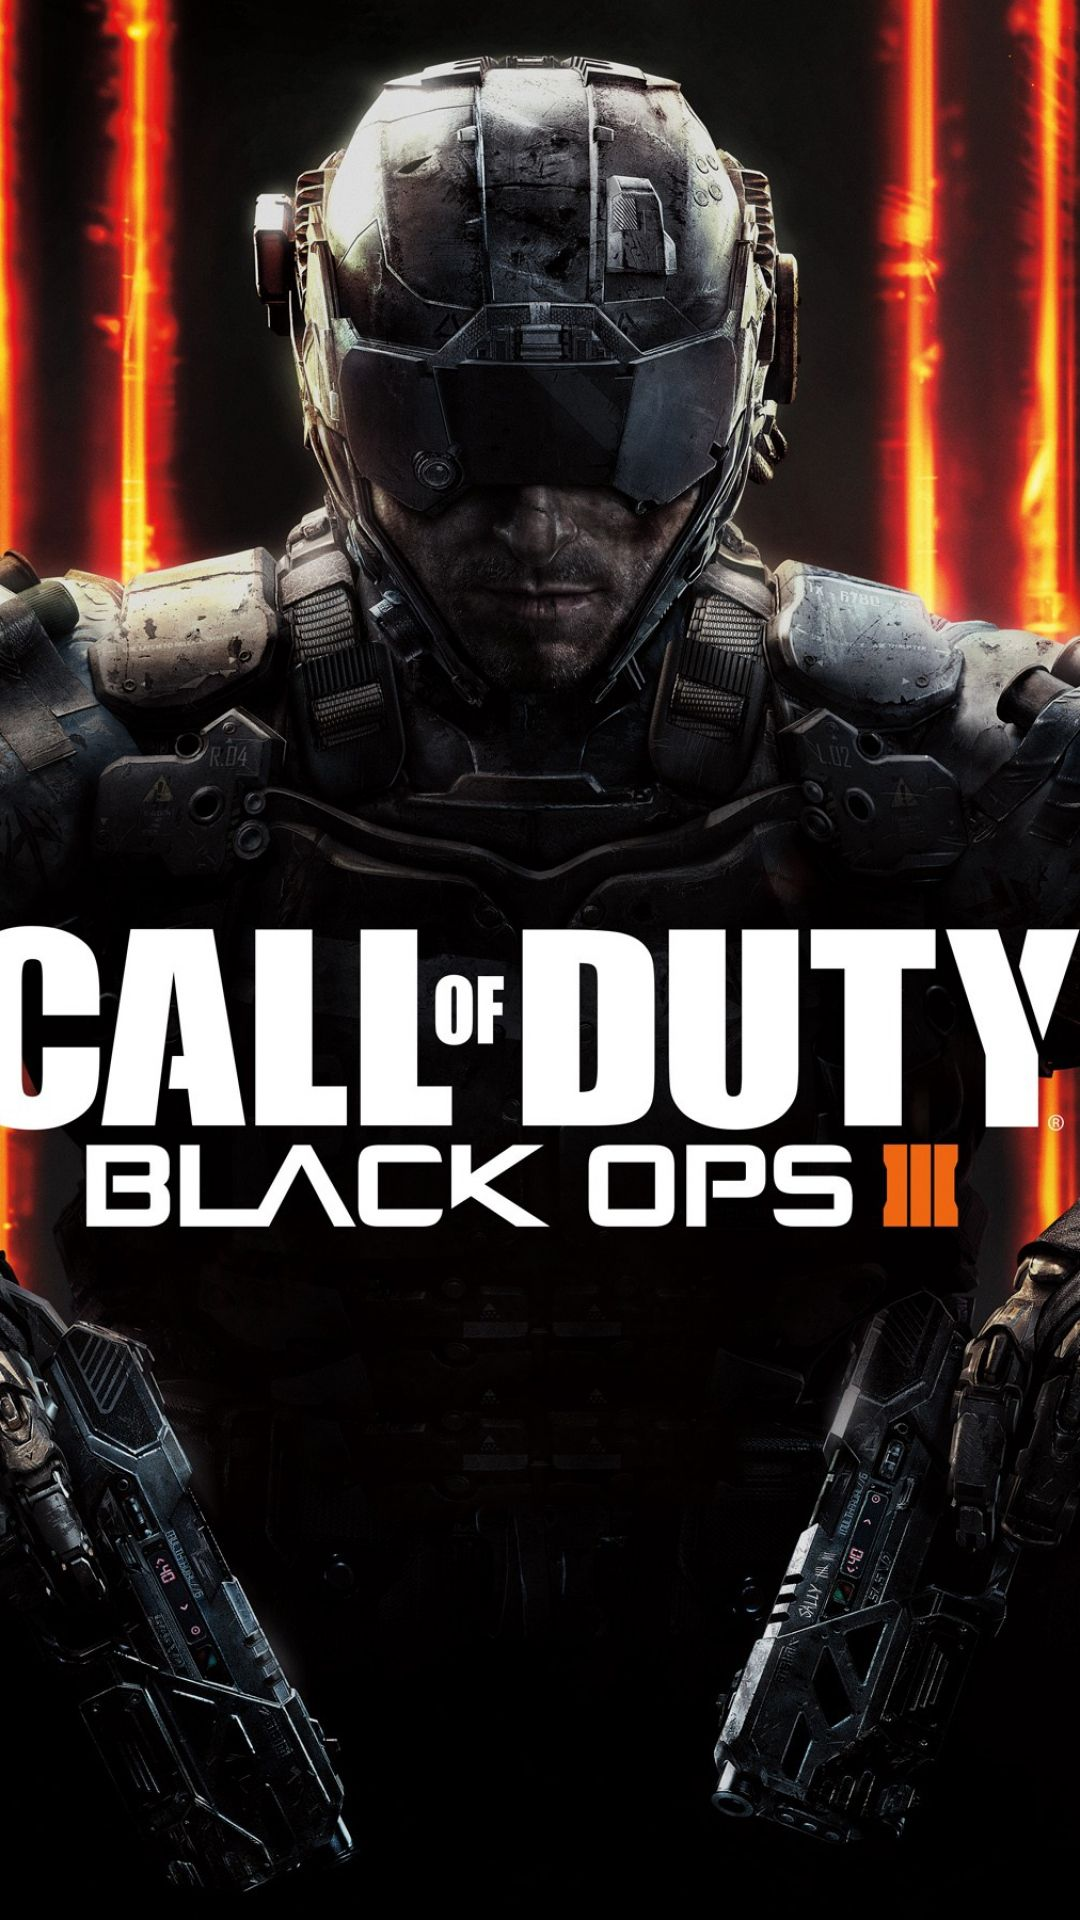 This Is Call Of Duty Black Ops 3 Call Of Duty Personajes De